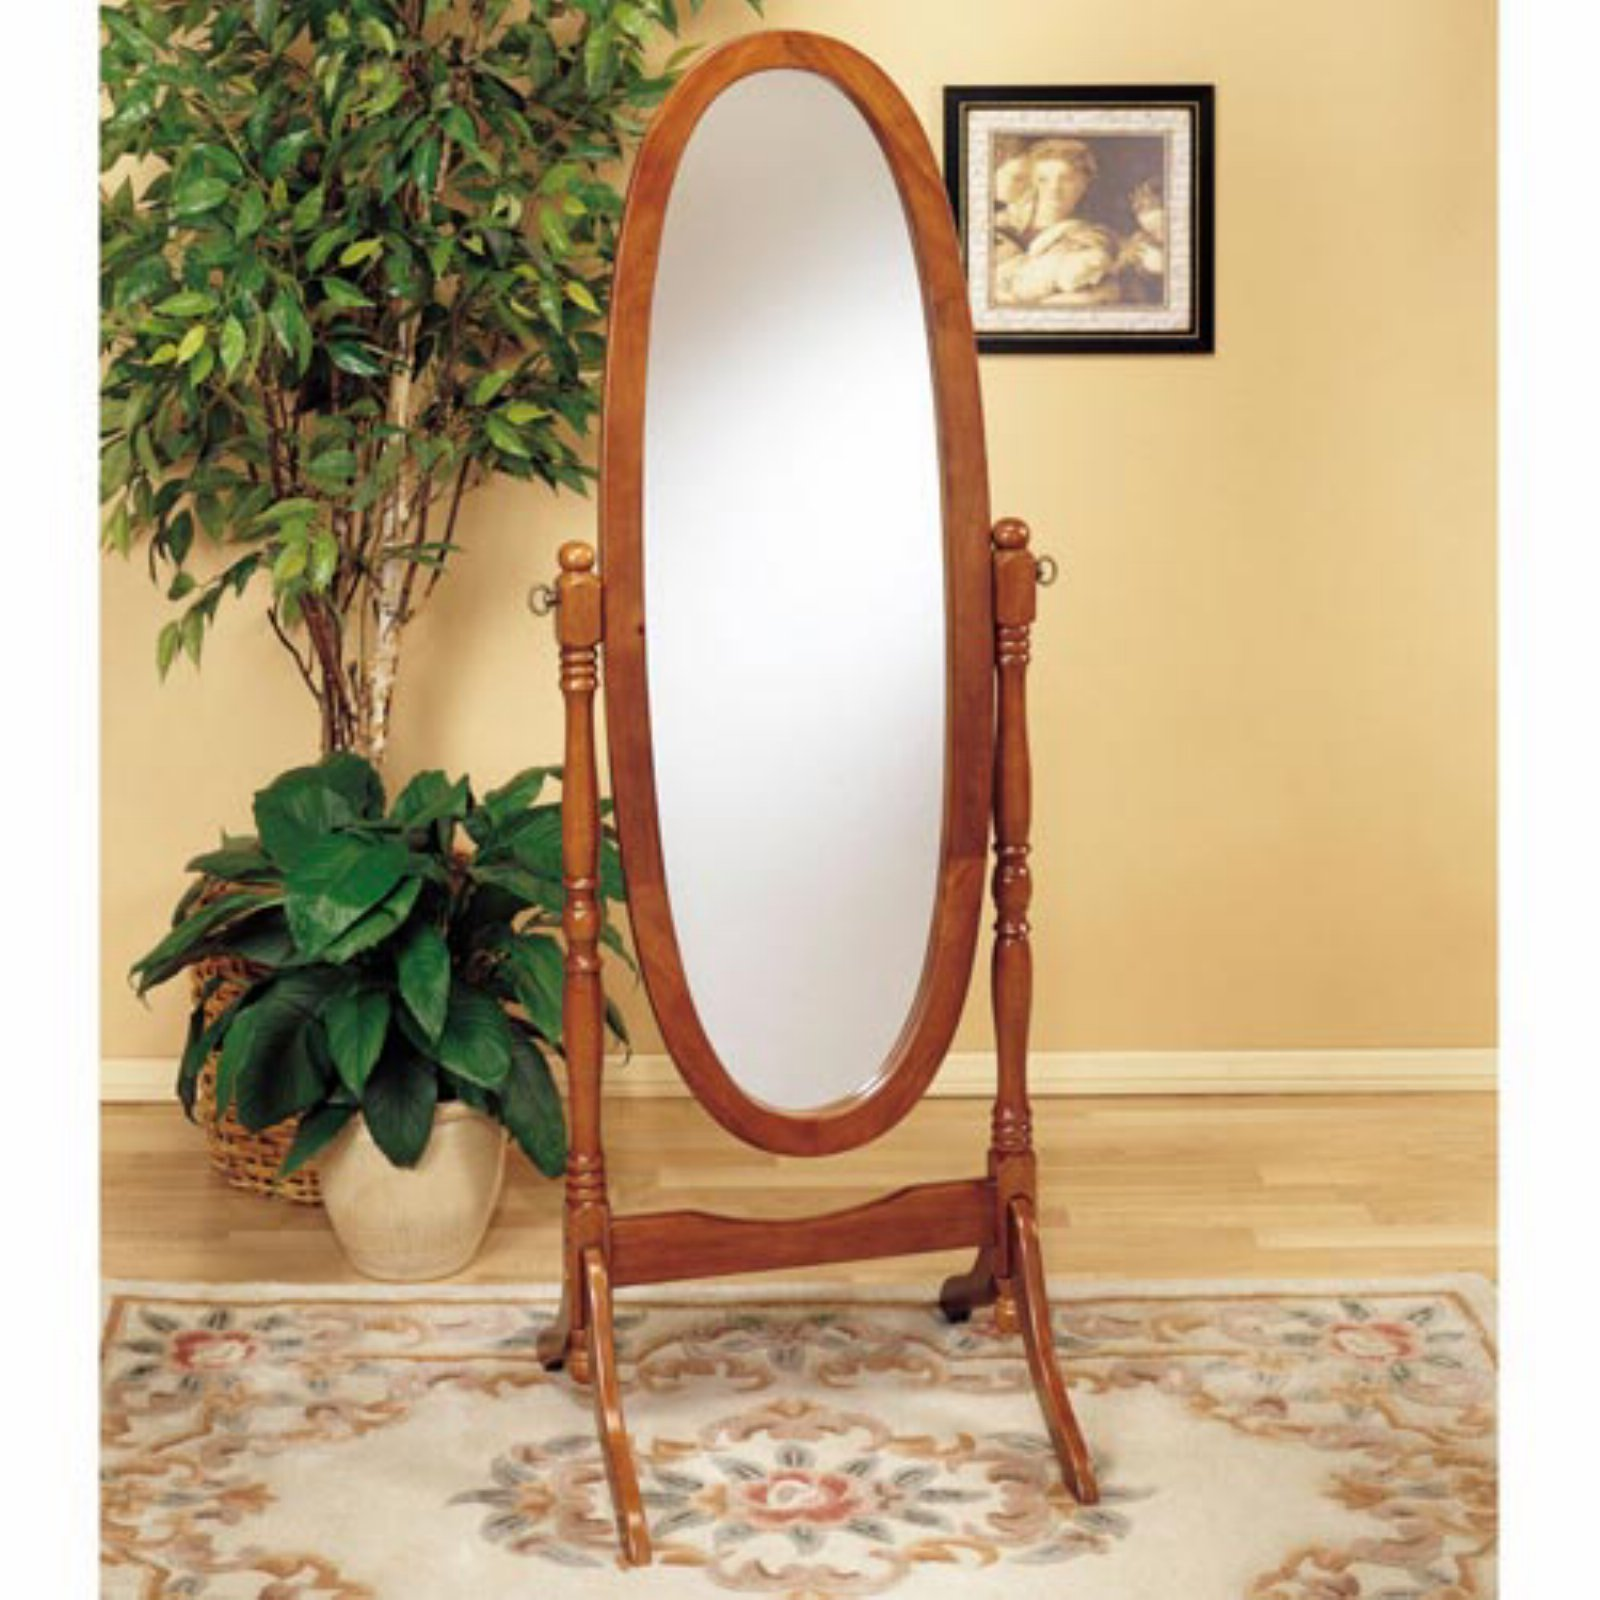 Powell Nostalgic Oak Finish Cheval Floor Mirror - 22.5W x 59.25H in.